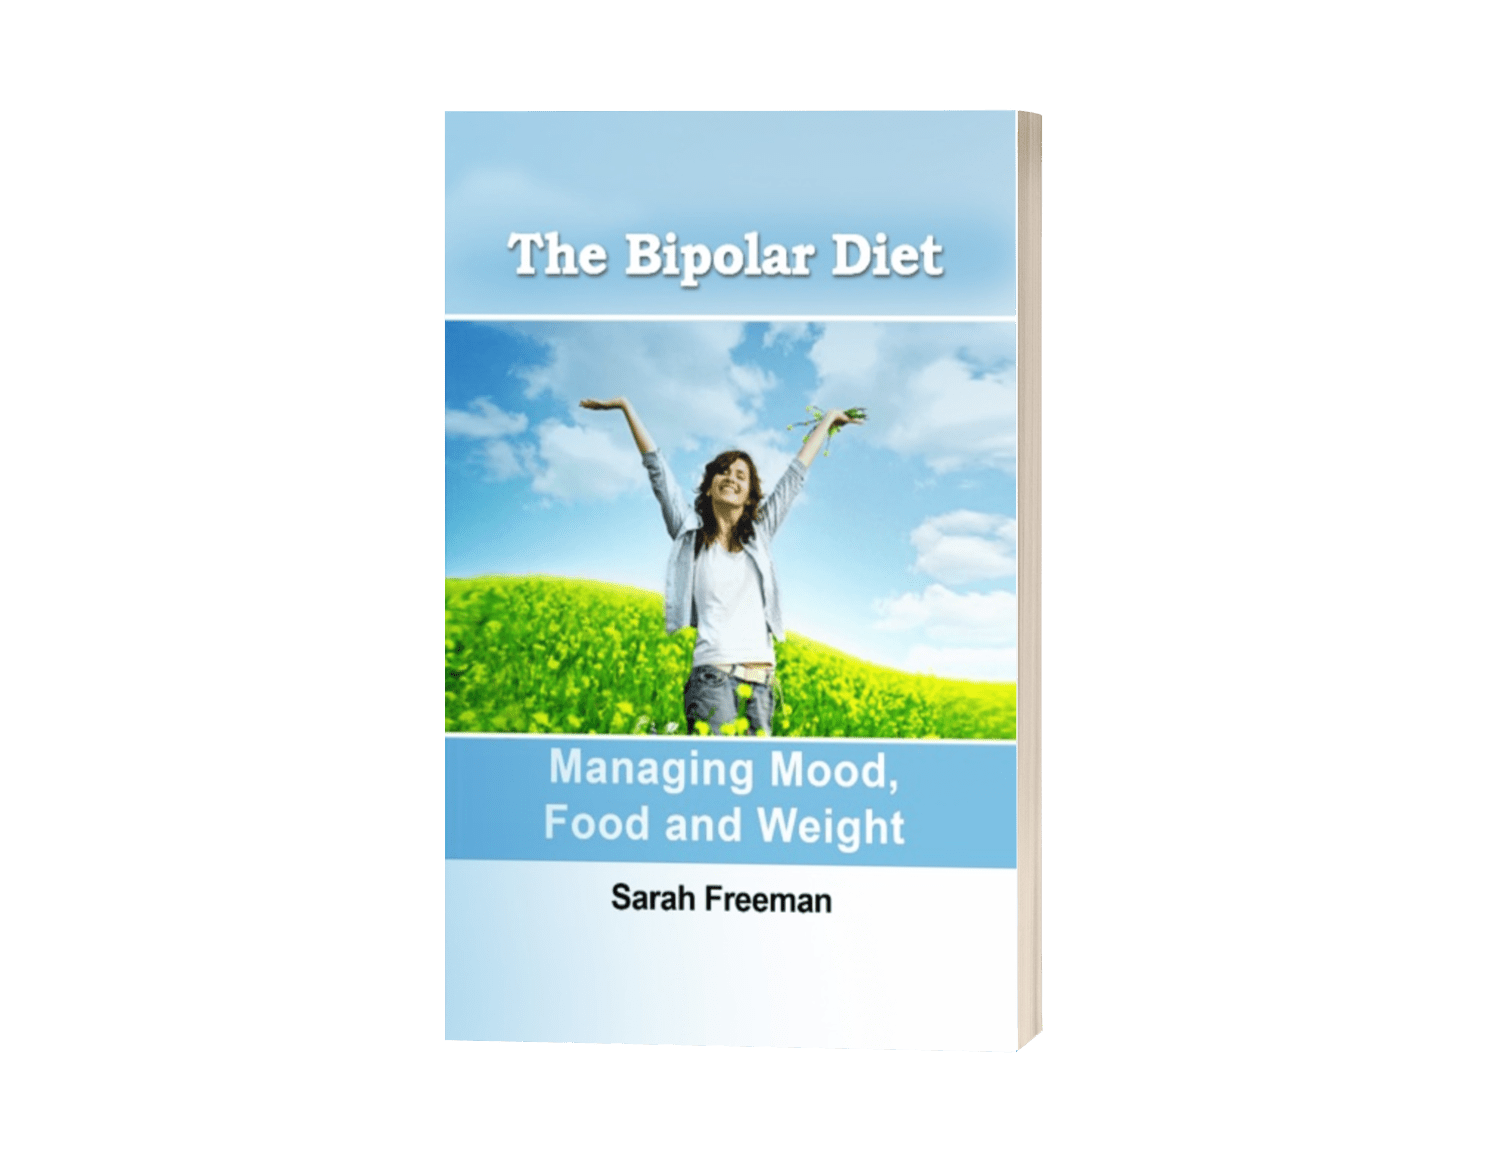 The Bipolar Diet: Managing Mood, Food and Weight